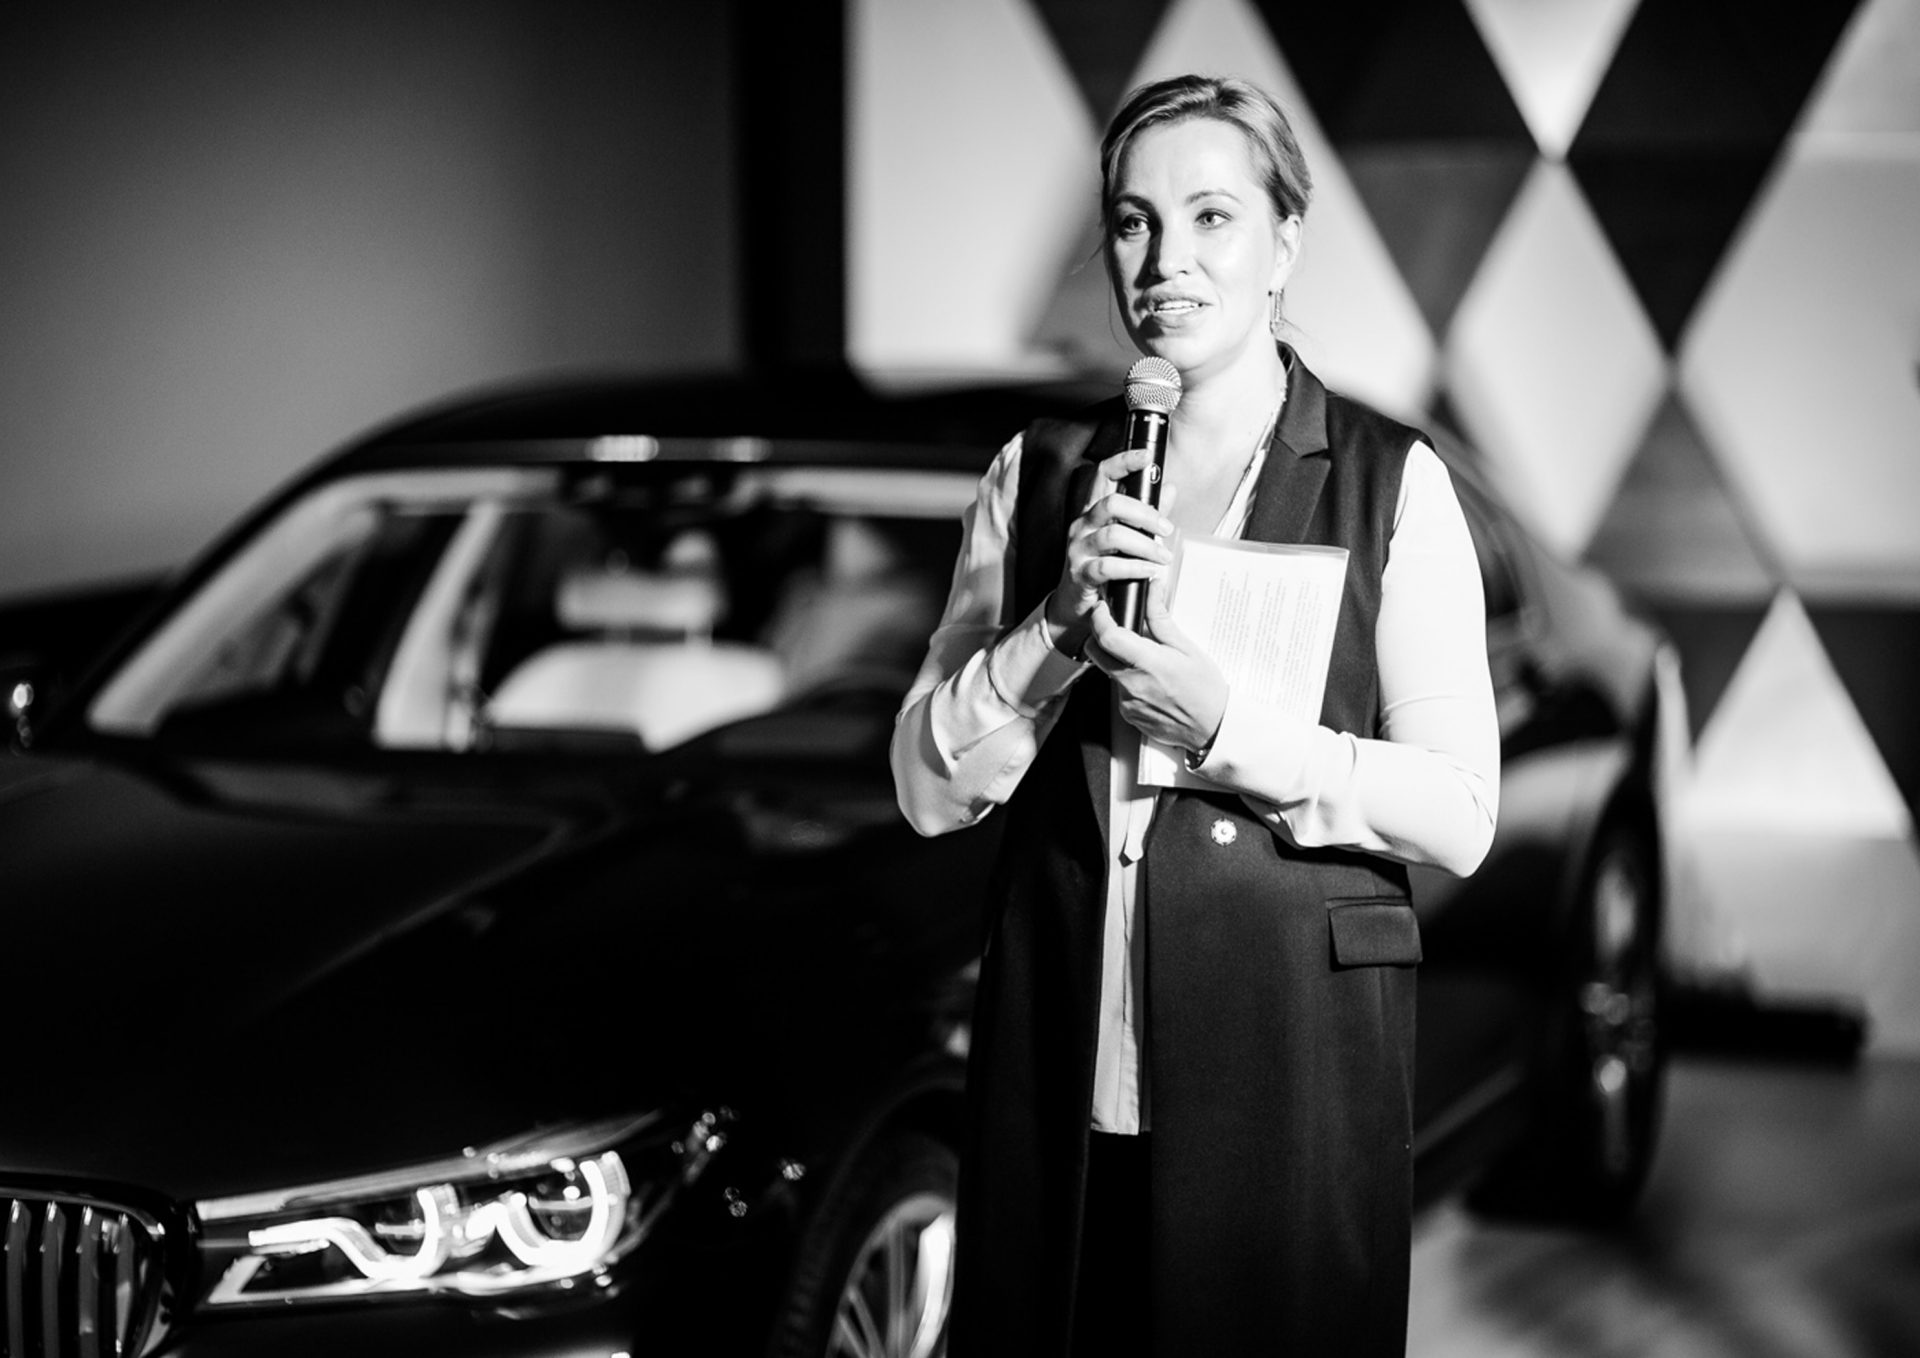 Elena Smirnova at the BMW Individual 750Li xDrive THE NEXT 100 YEARS presentation at the Museum of Russian Impressionism